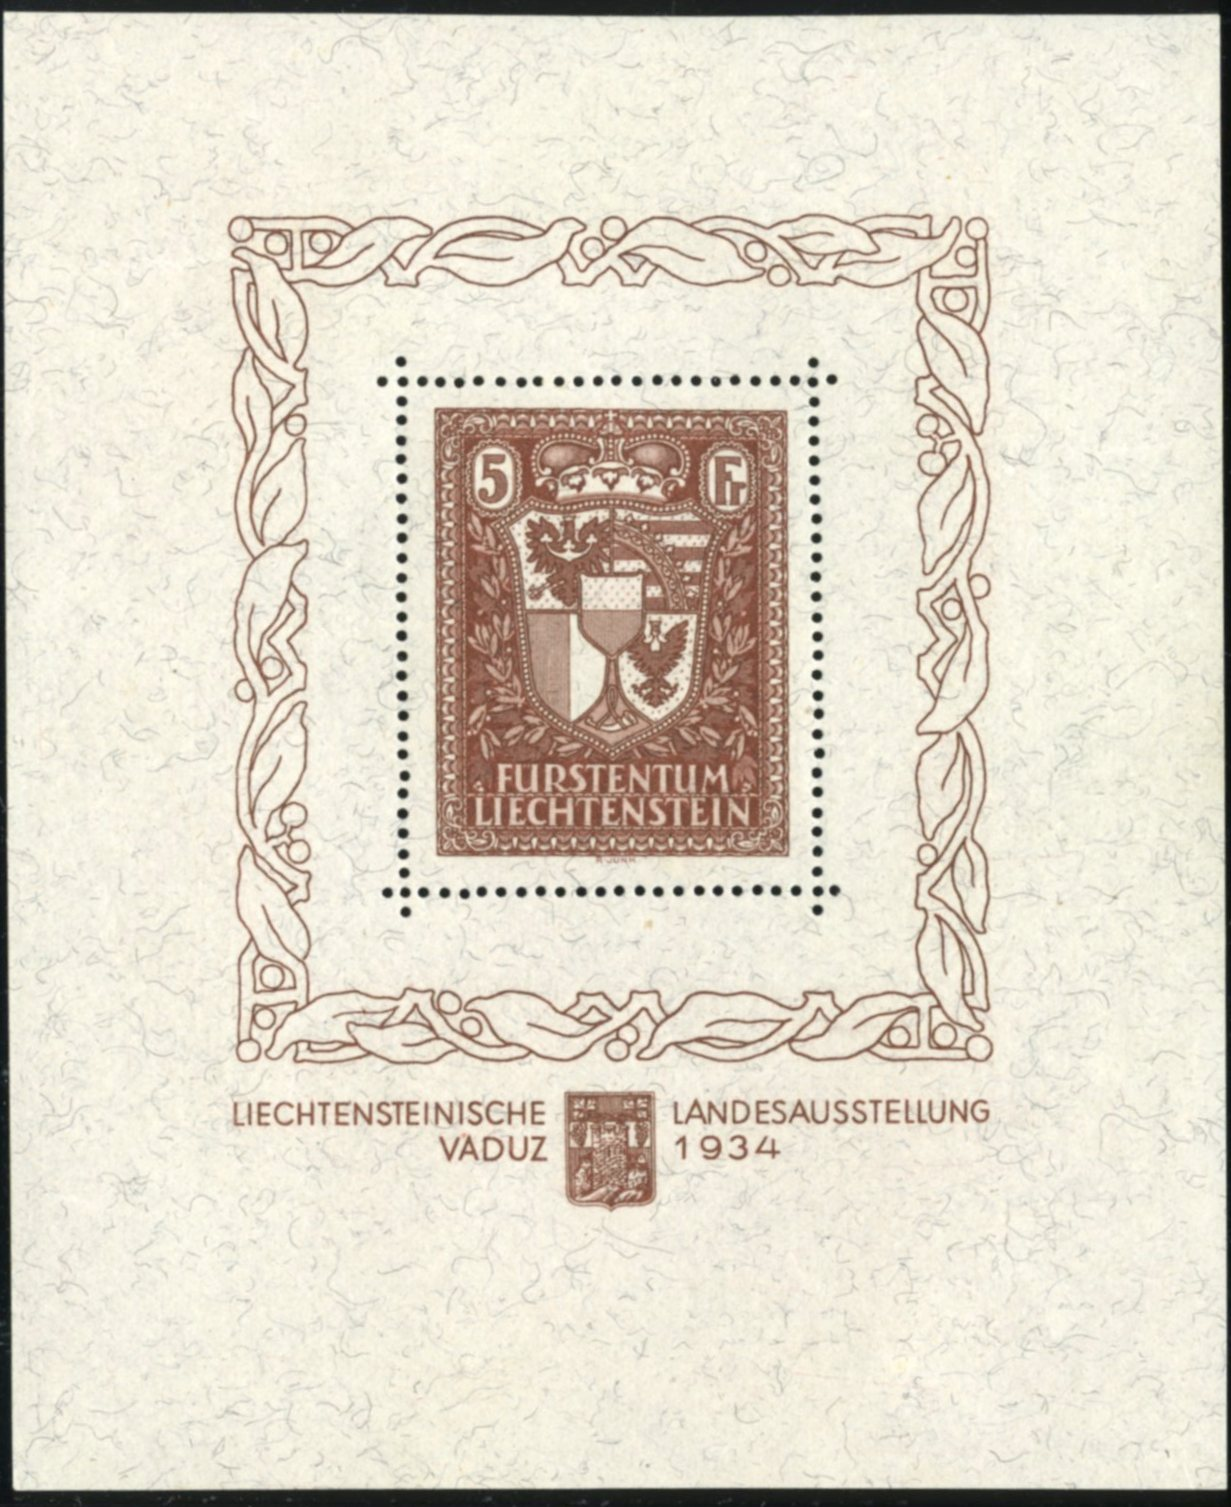 Lot 20 - Liechtenstein  -  Tel Aviv Stamps Ltd. Auction #45